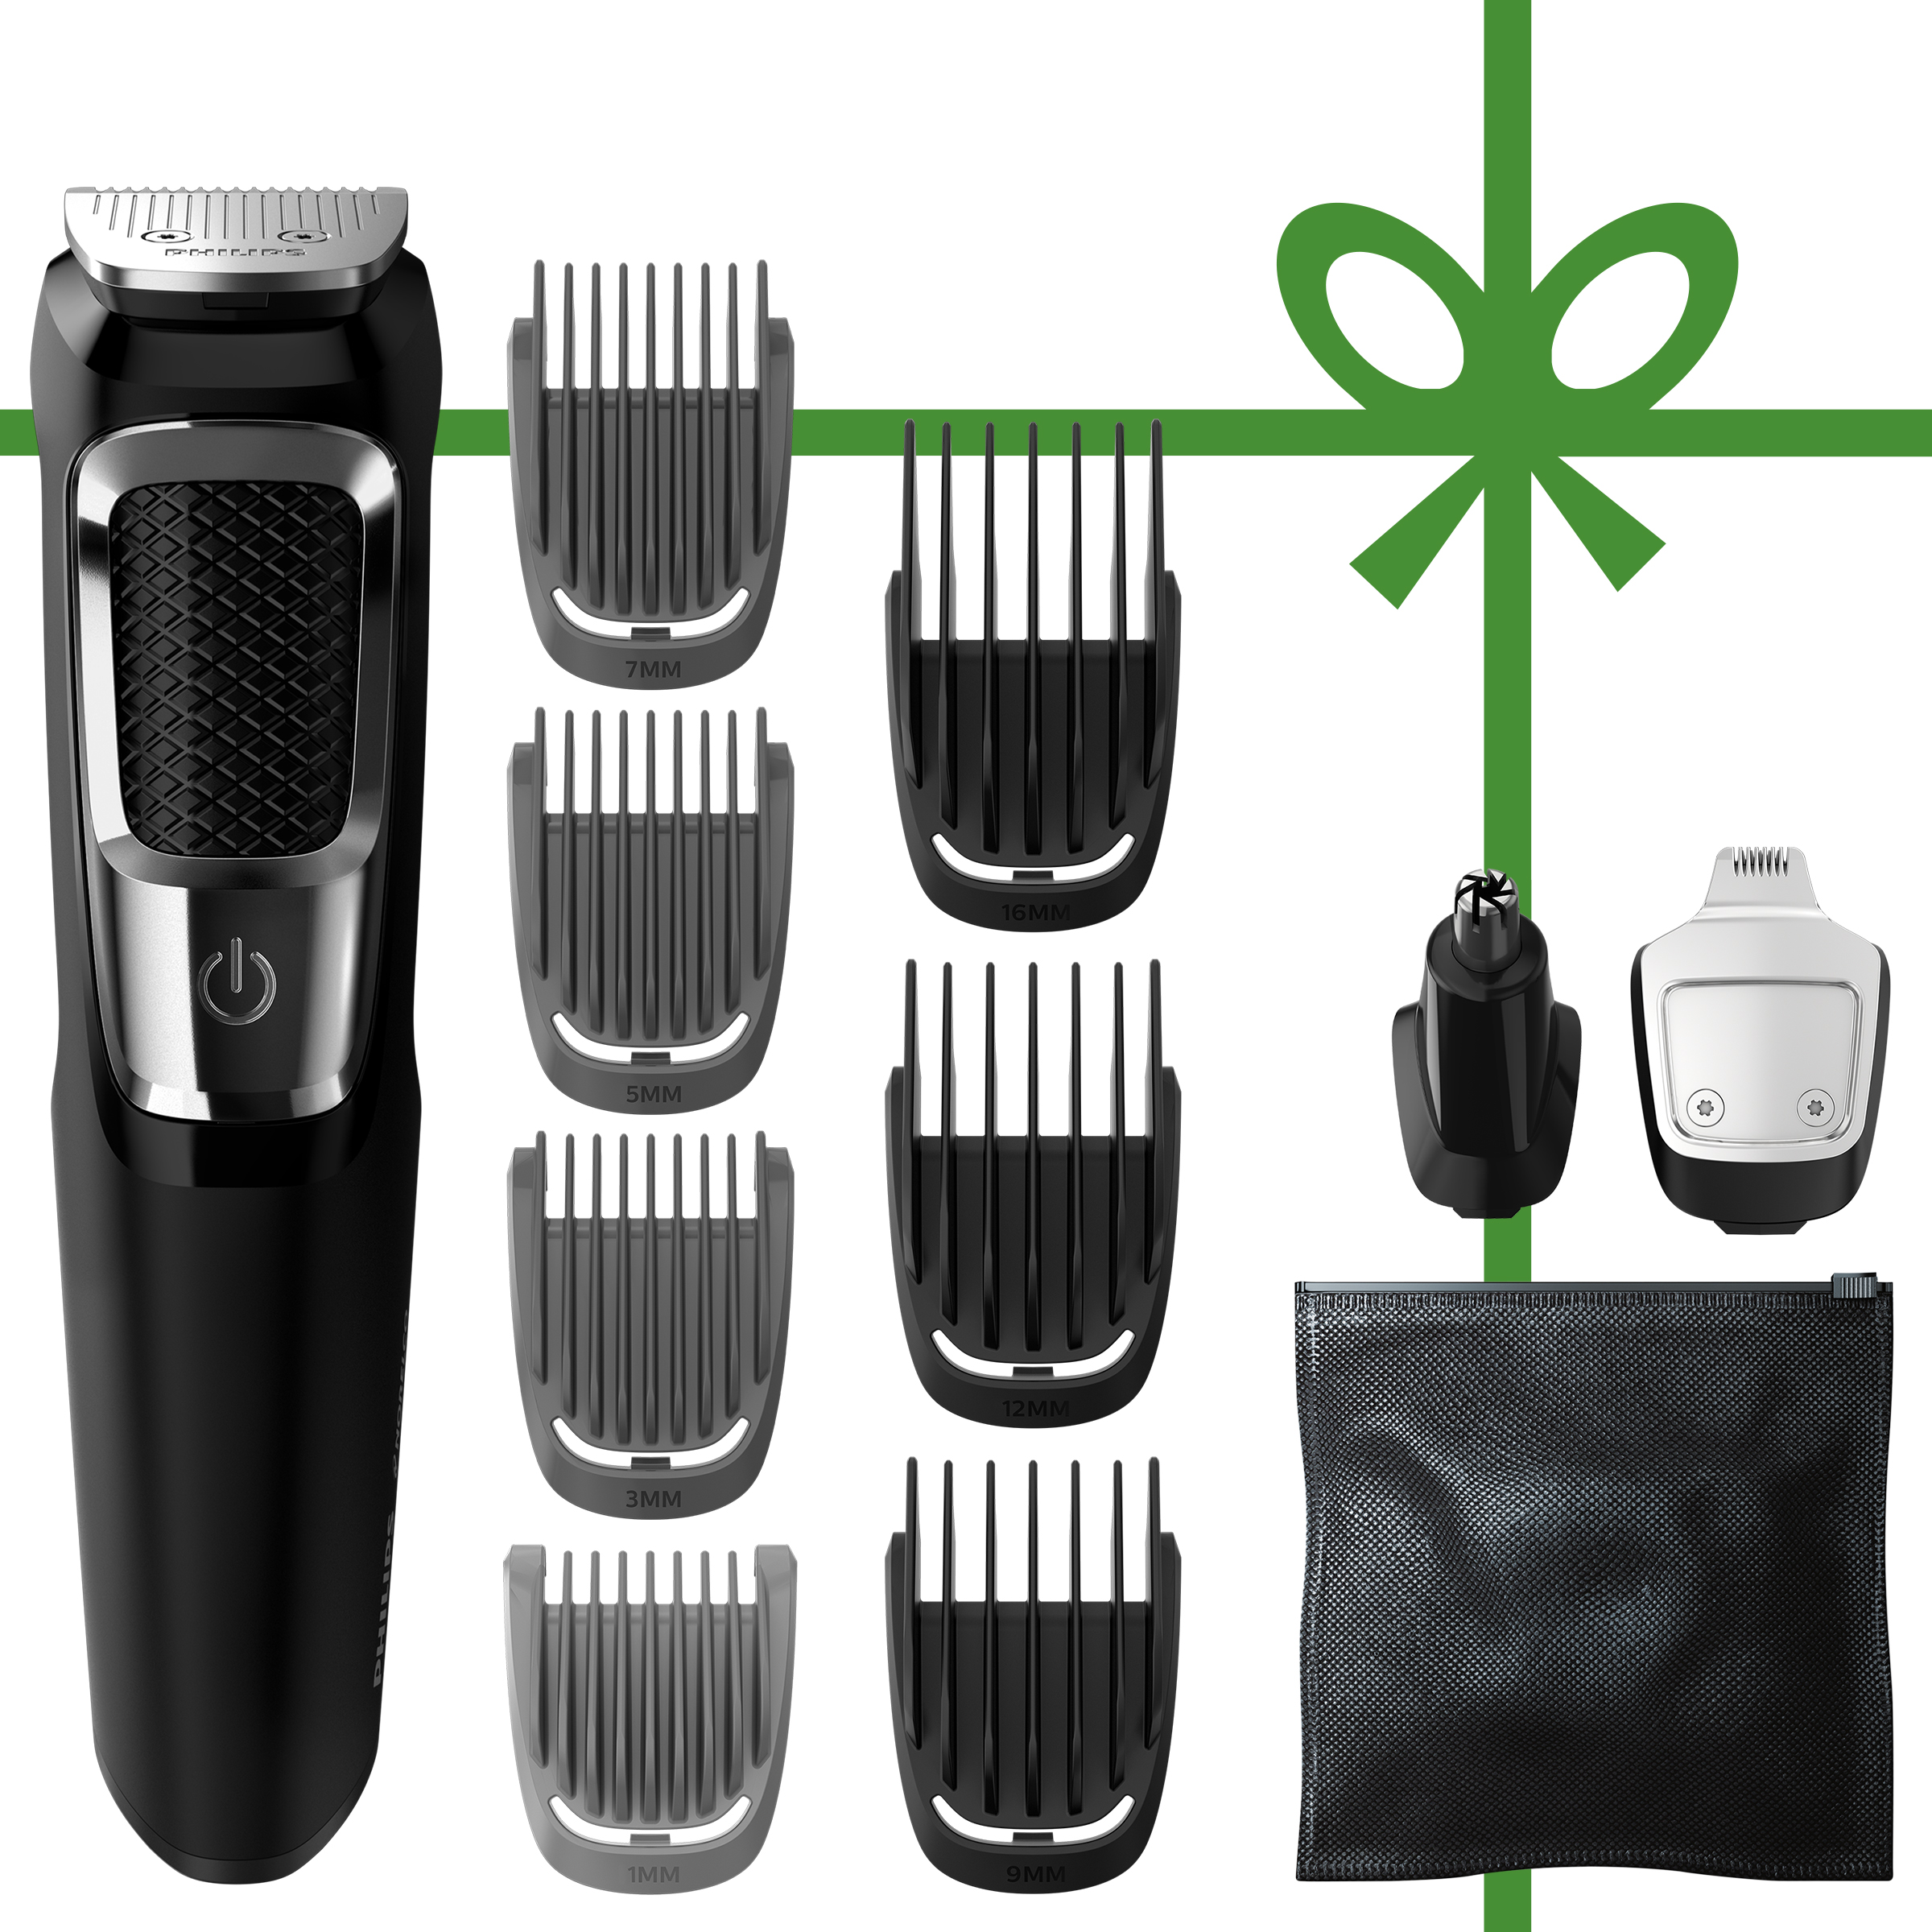 Philips Norelco Multigroom Series 3000, 13 attachments, MG3750/60